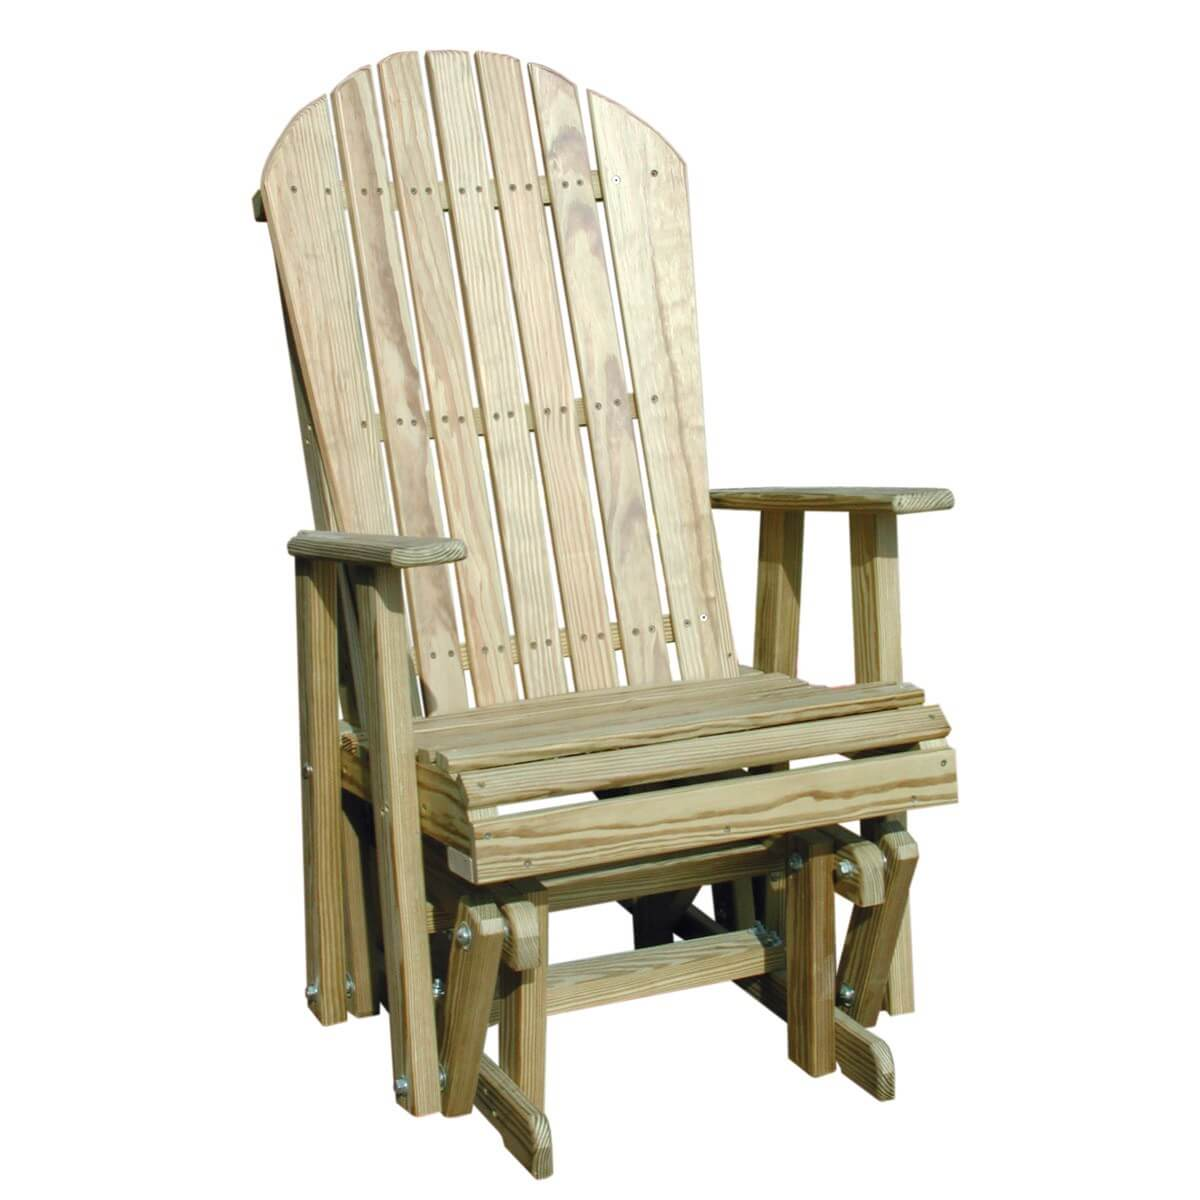 LuxCraft Wood Adirondack Glider Chair 2  Hostetlers